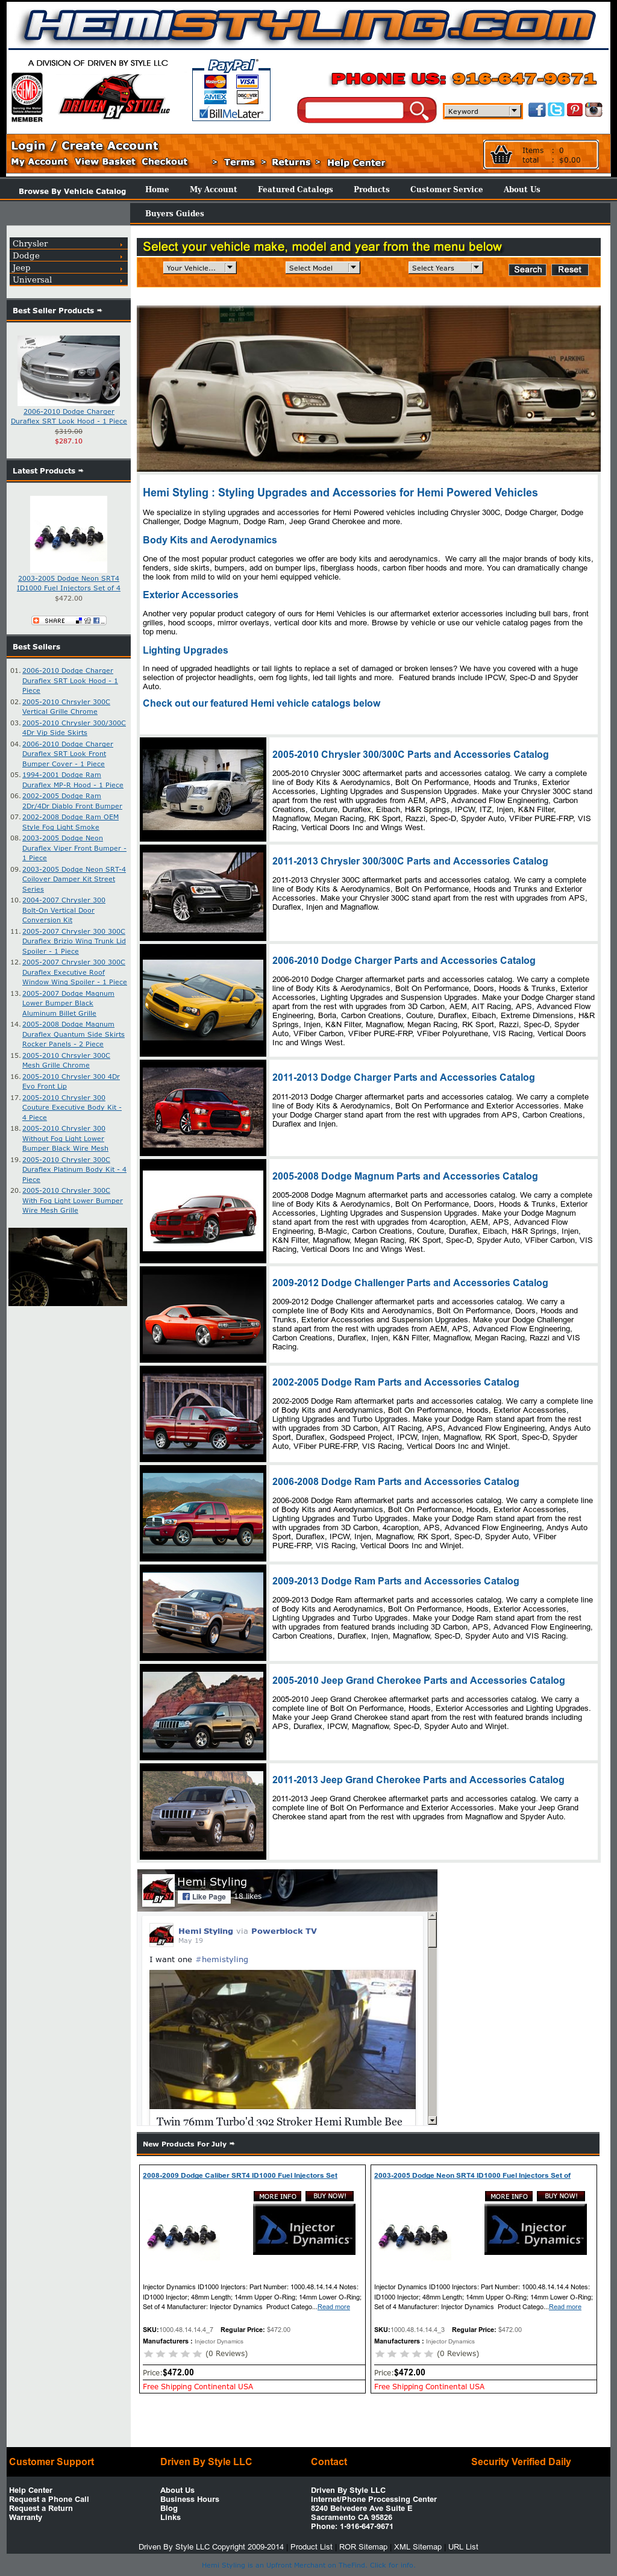 Hemi Styling Competitors, Revenue and Employees - Owler Company Profile